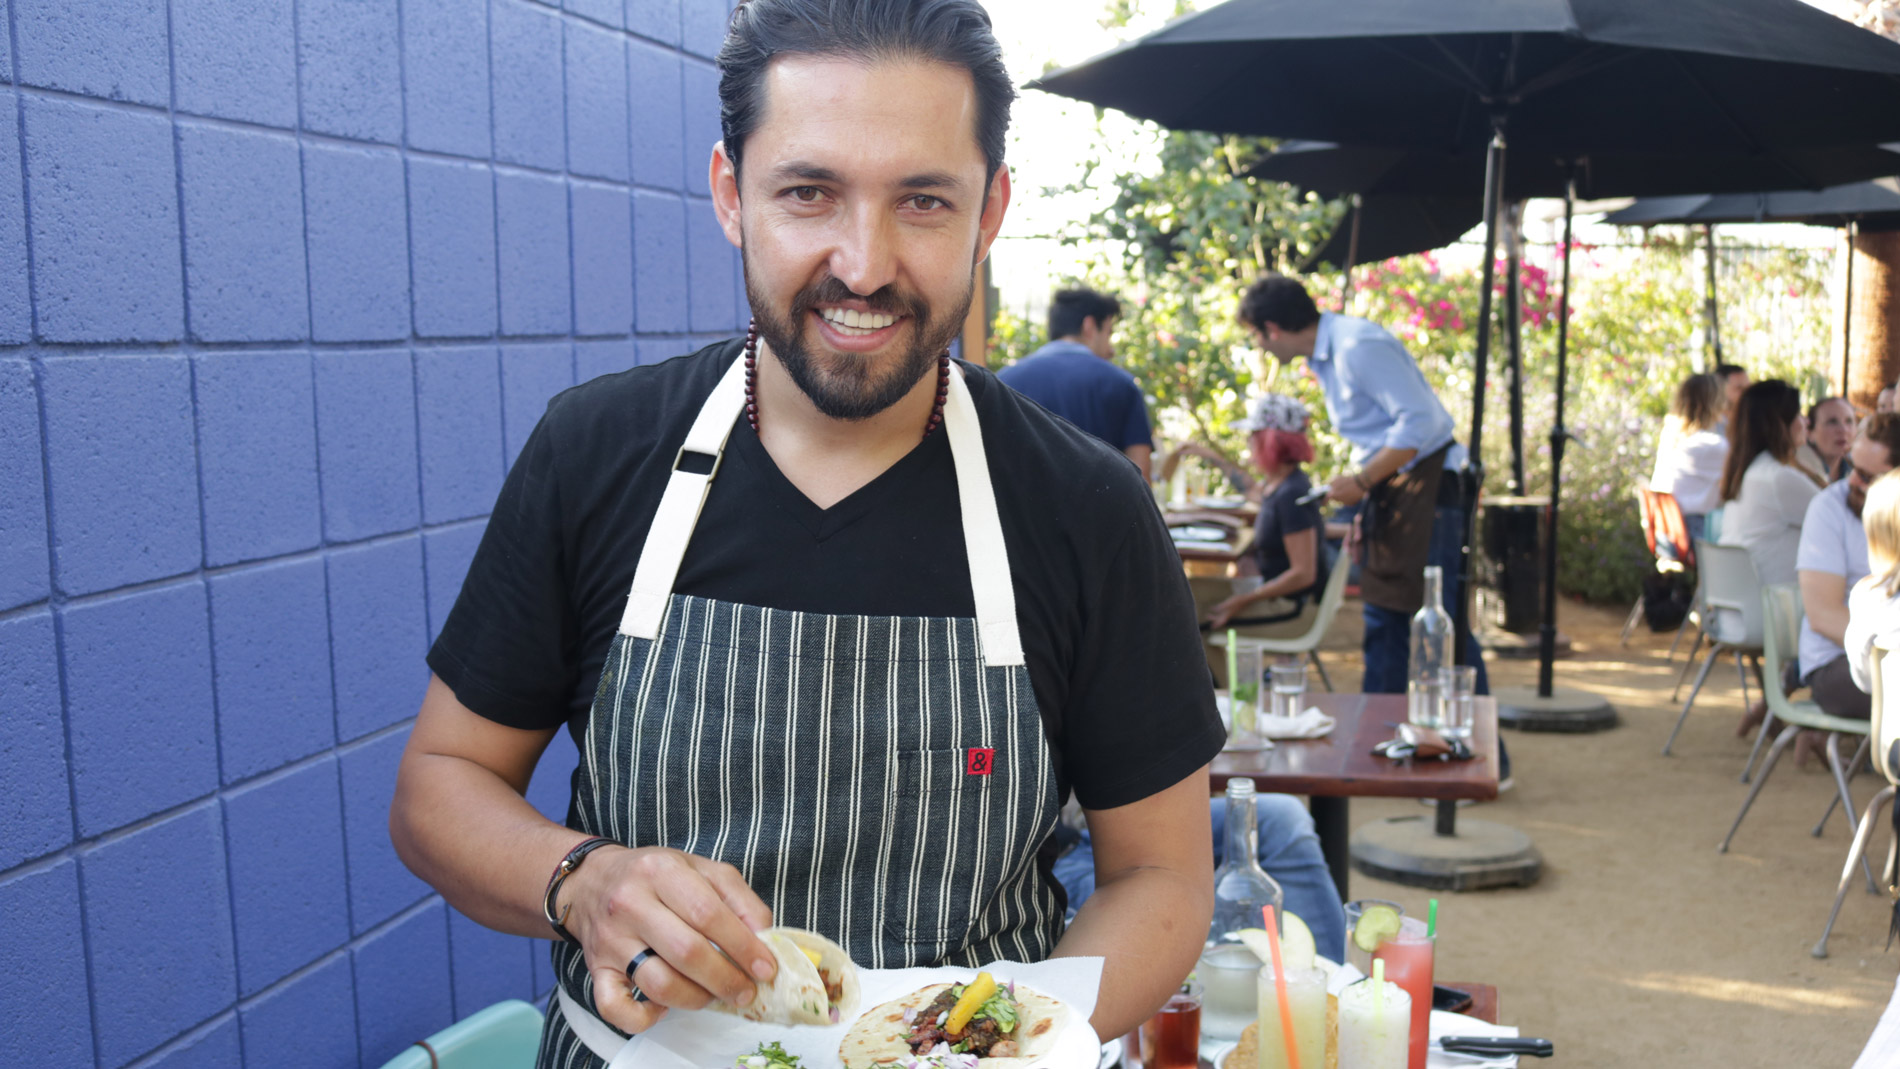 How Selling Tacos in a Parking Lot Saved This Chef's Life